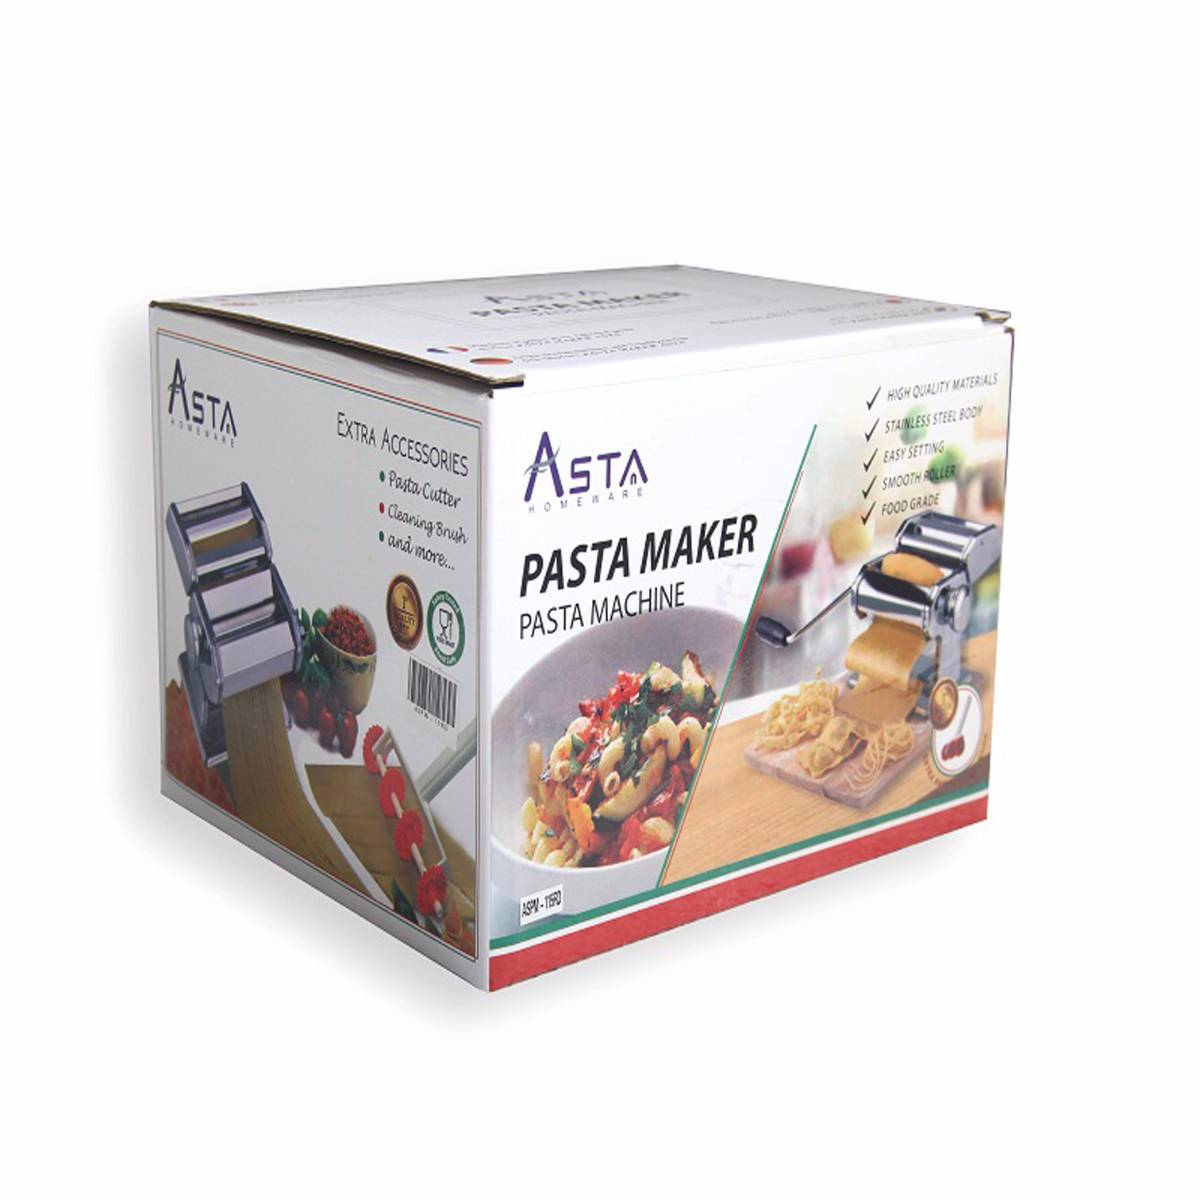 Asta Homeware Gilingan Mie / Pasta Maker ( Red , Orange & Silver/stainless Steel )4